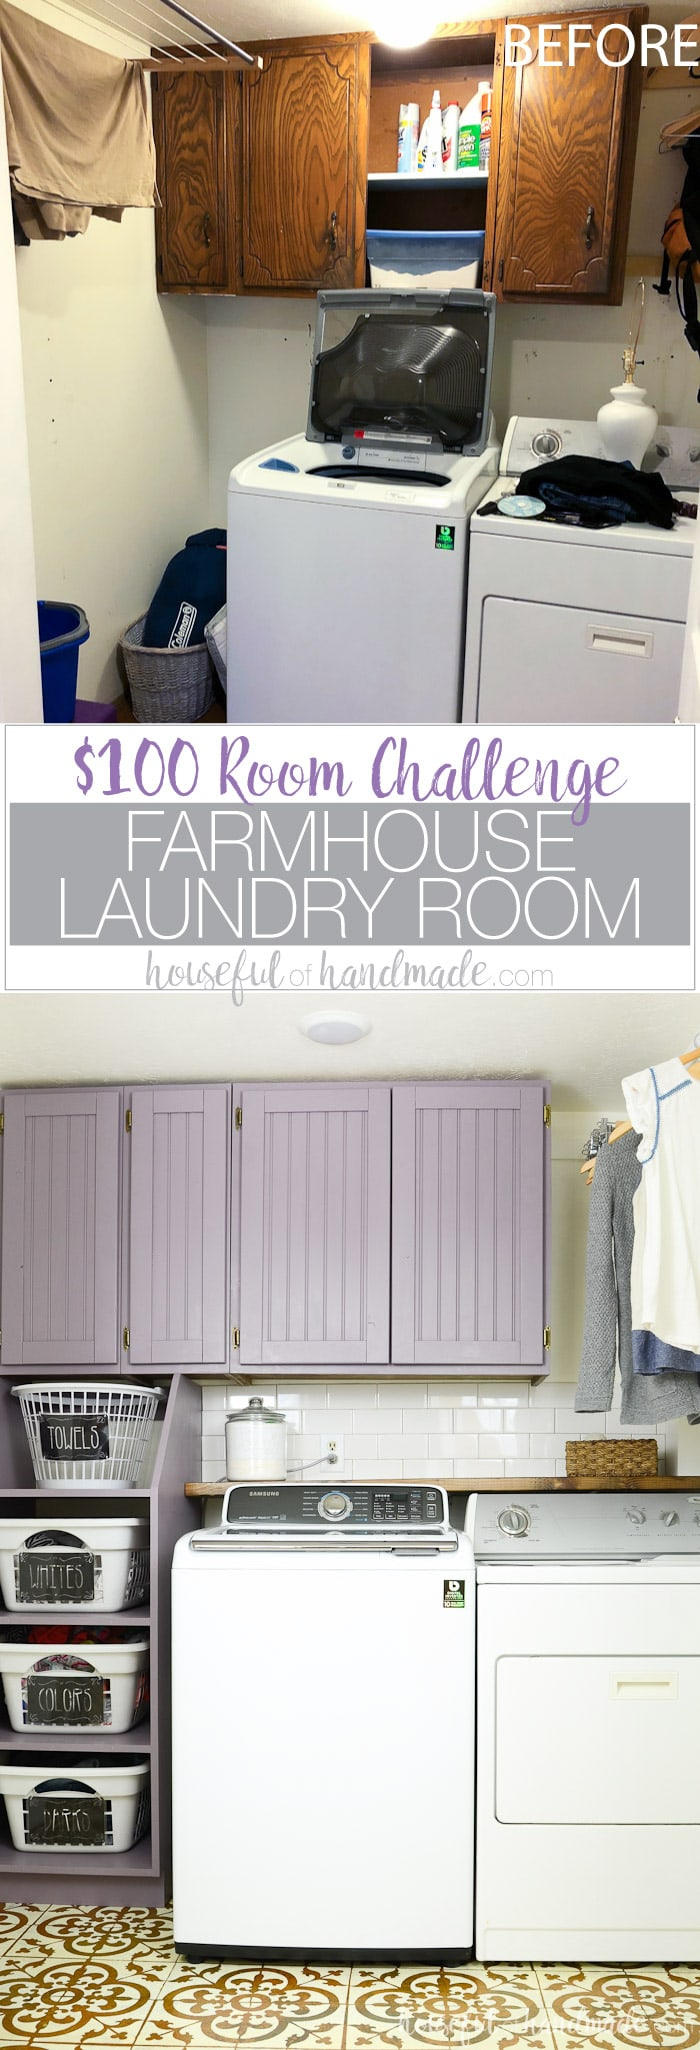 Can you transform a space for only $100? See how we turned our basement laundry room closet into a beautiful colorful farmhouse laundry room on a budget. This 1 month challenge required lots of smart choices and creativity, but the transformation is amazing! See the colorful farmhouse laundry room reveal. Housefulofhandmade.com